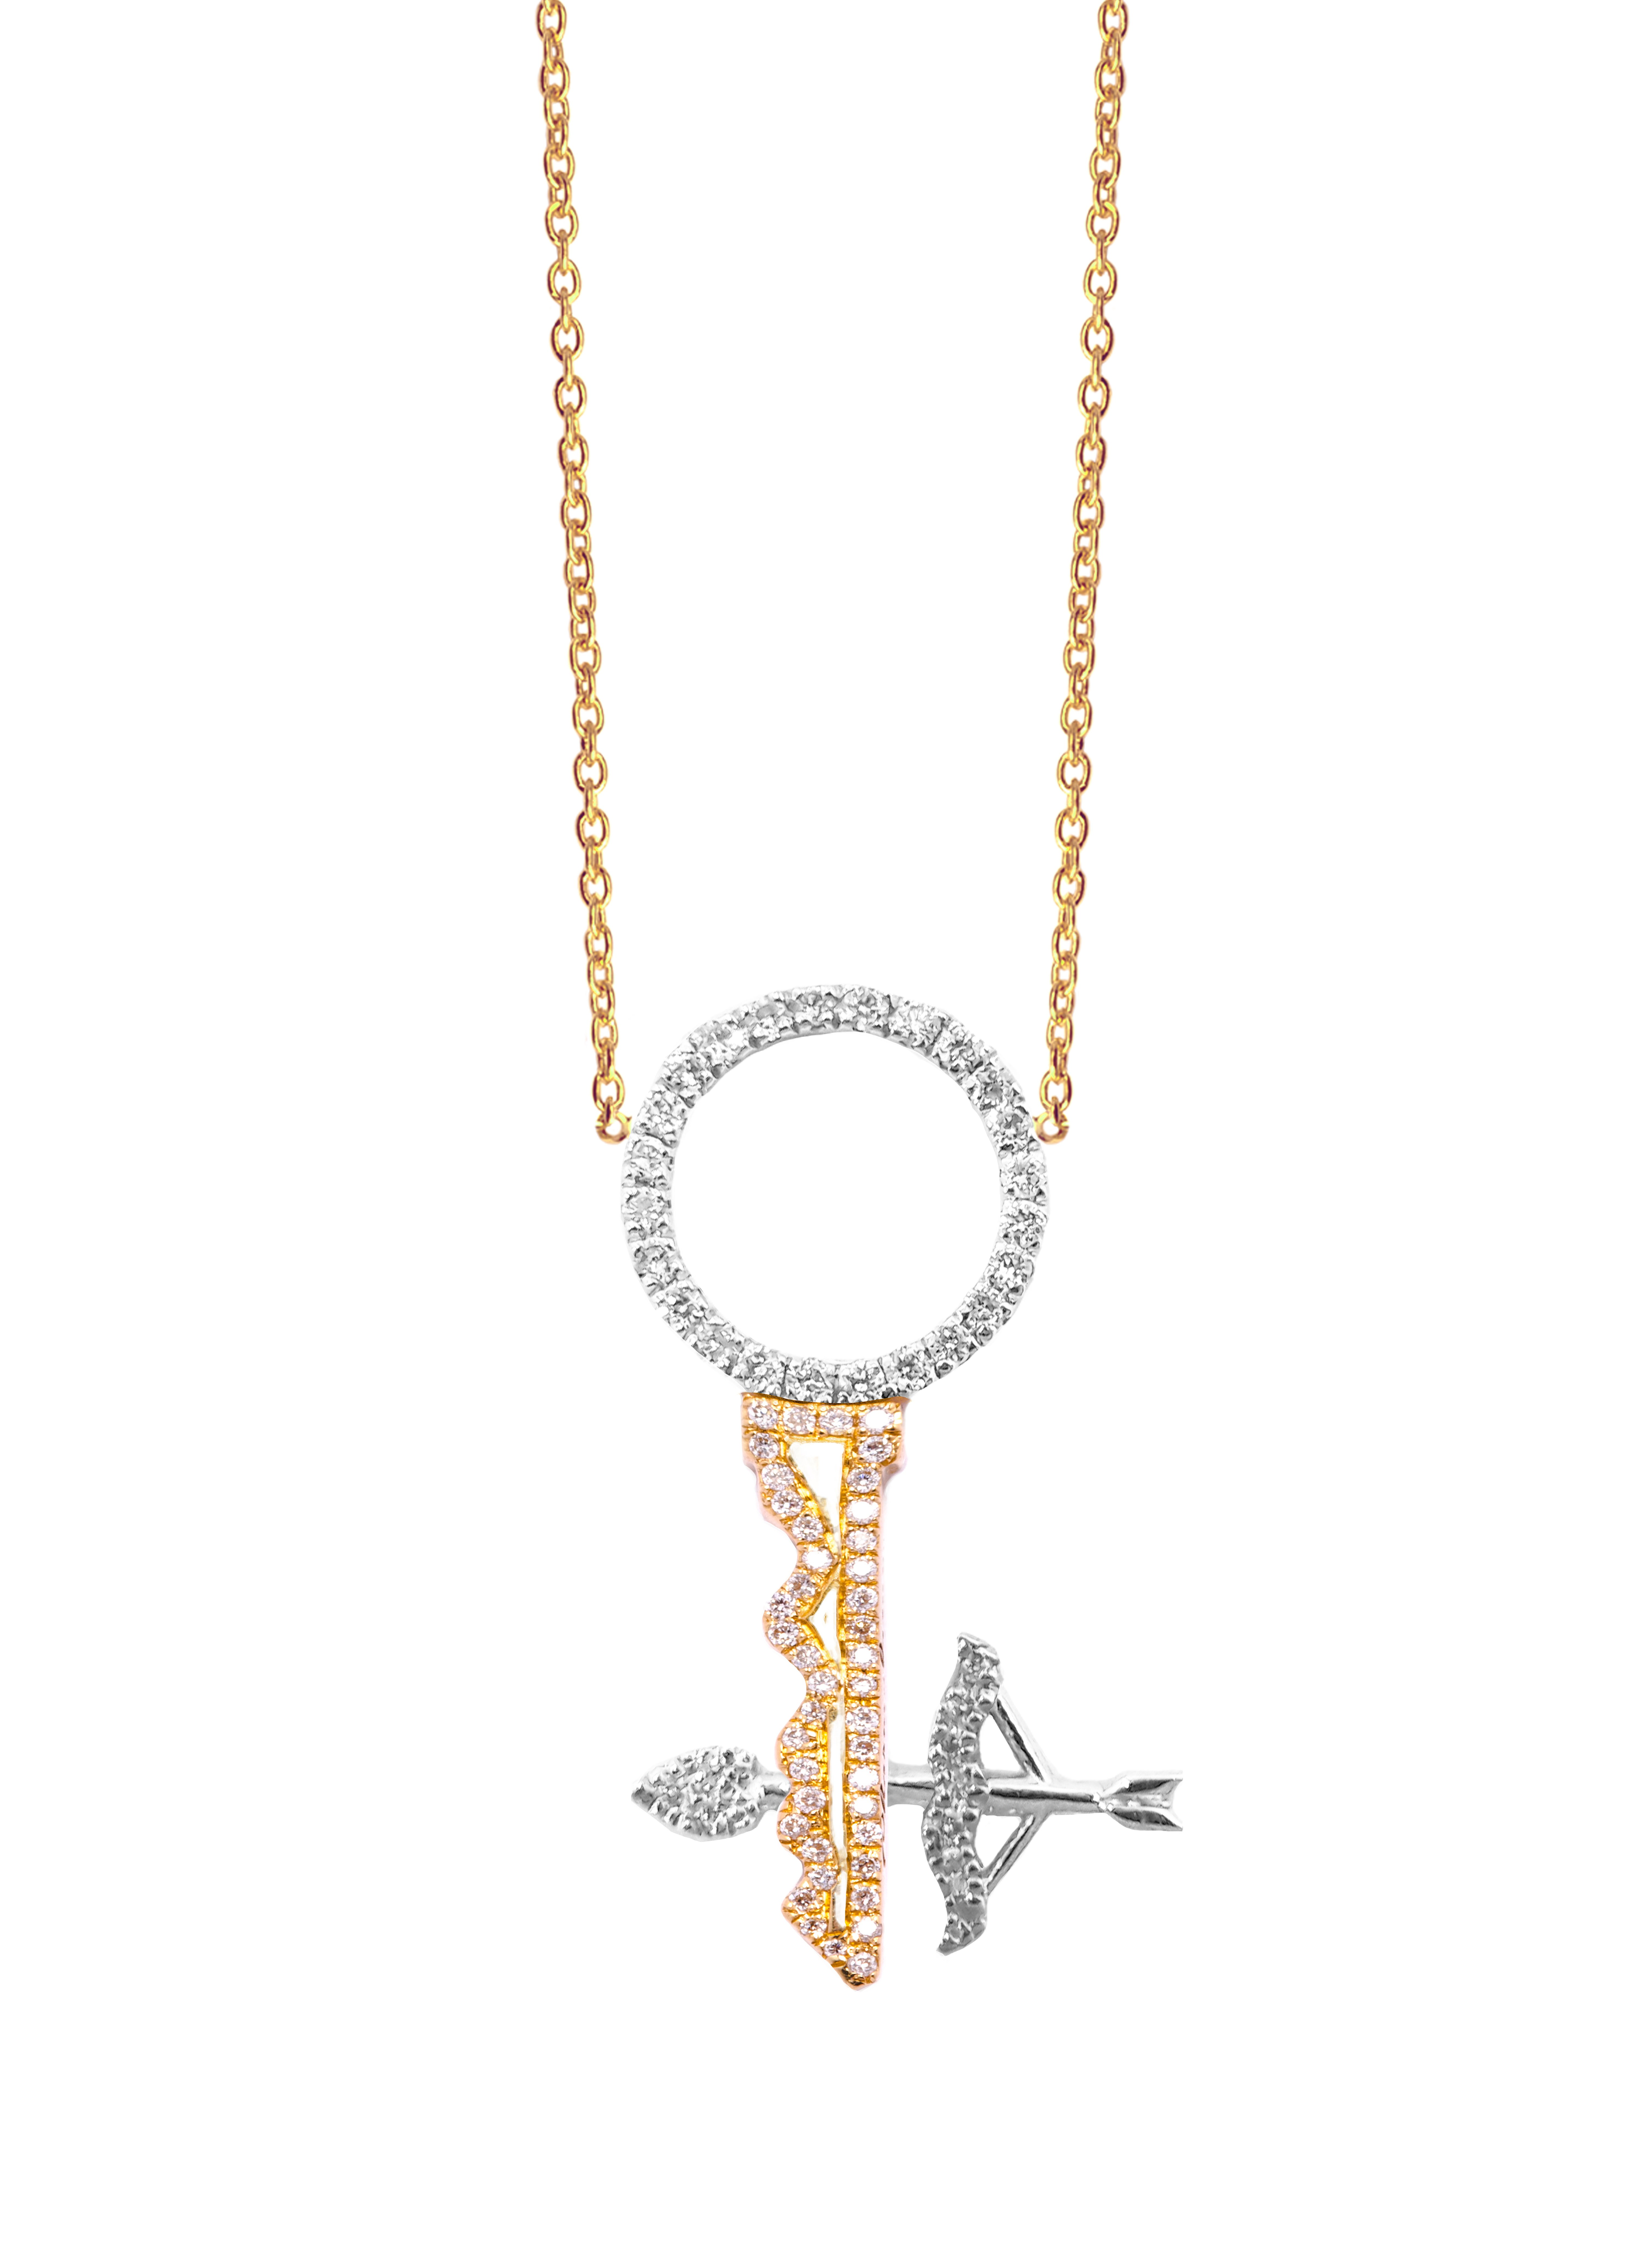 Key To My Heart Special Edition Necklace